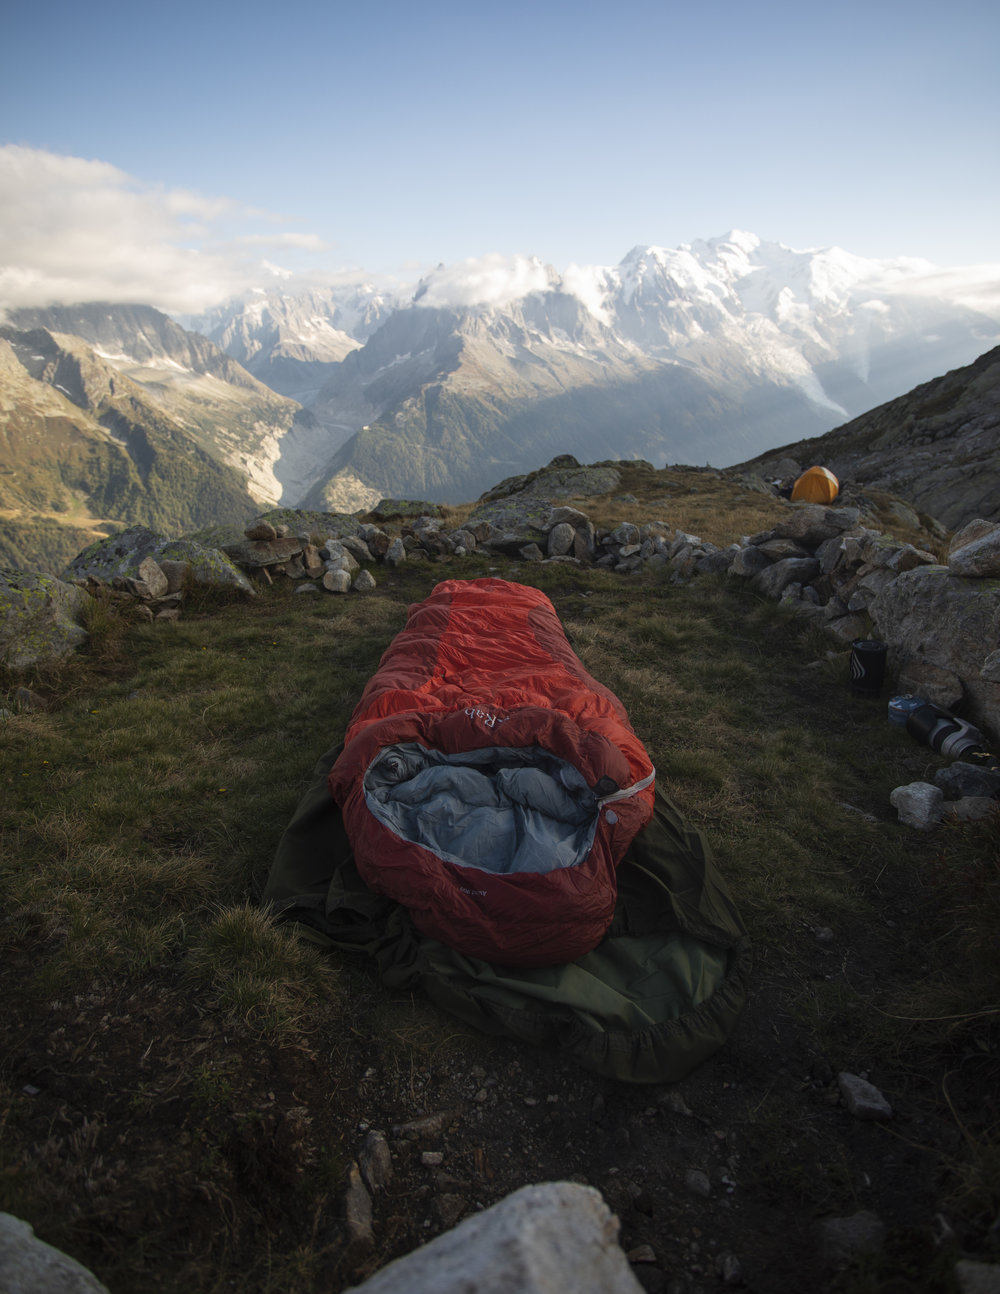 Bivi spot below the Aigulles Rouge in the Chamonix Valley. Ahead one can see the Mont Blanc, Aiguille de Midi, Grand Jorasses and Mer de Glace.  Rab Ascent 900 sleeping bag used here.